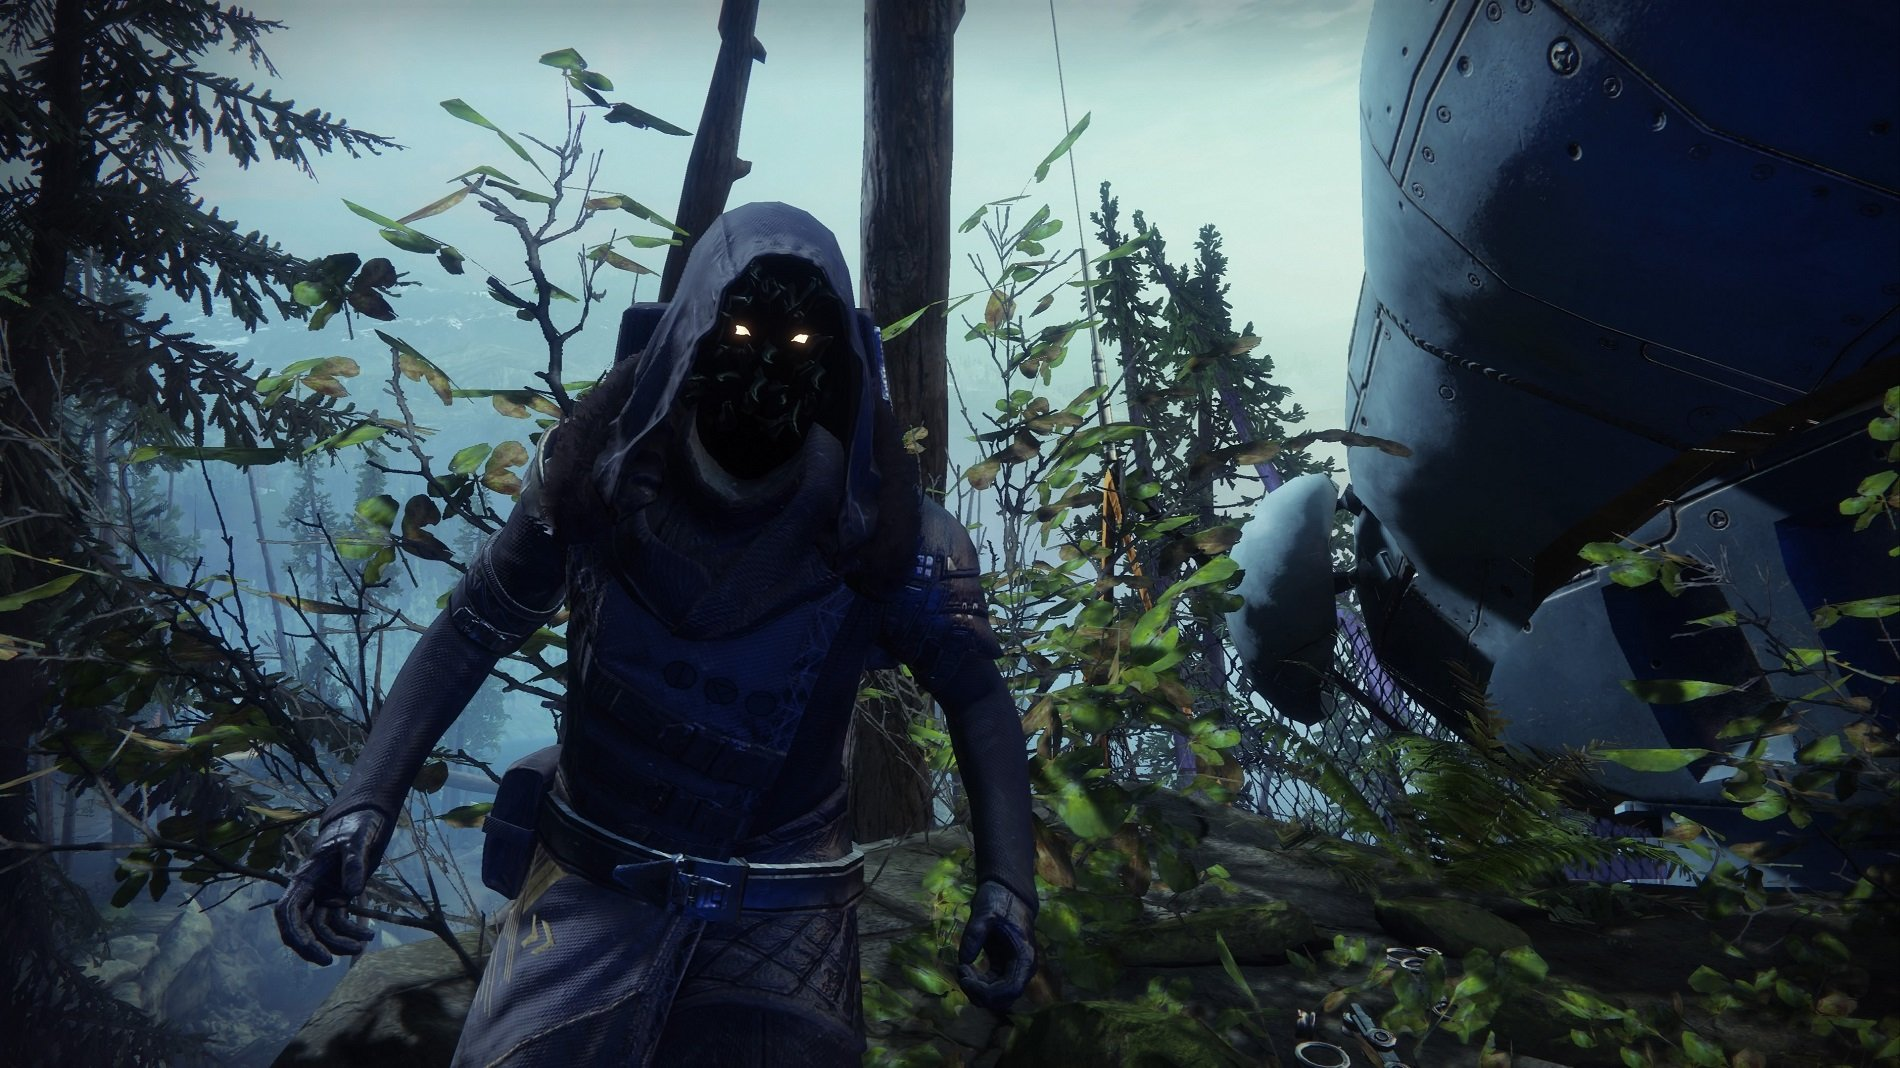 Where to find Xur in Destiny 2 - September 13, 2019